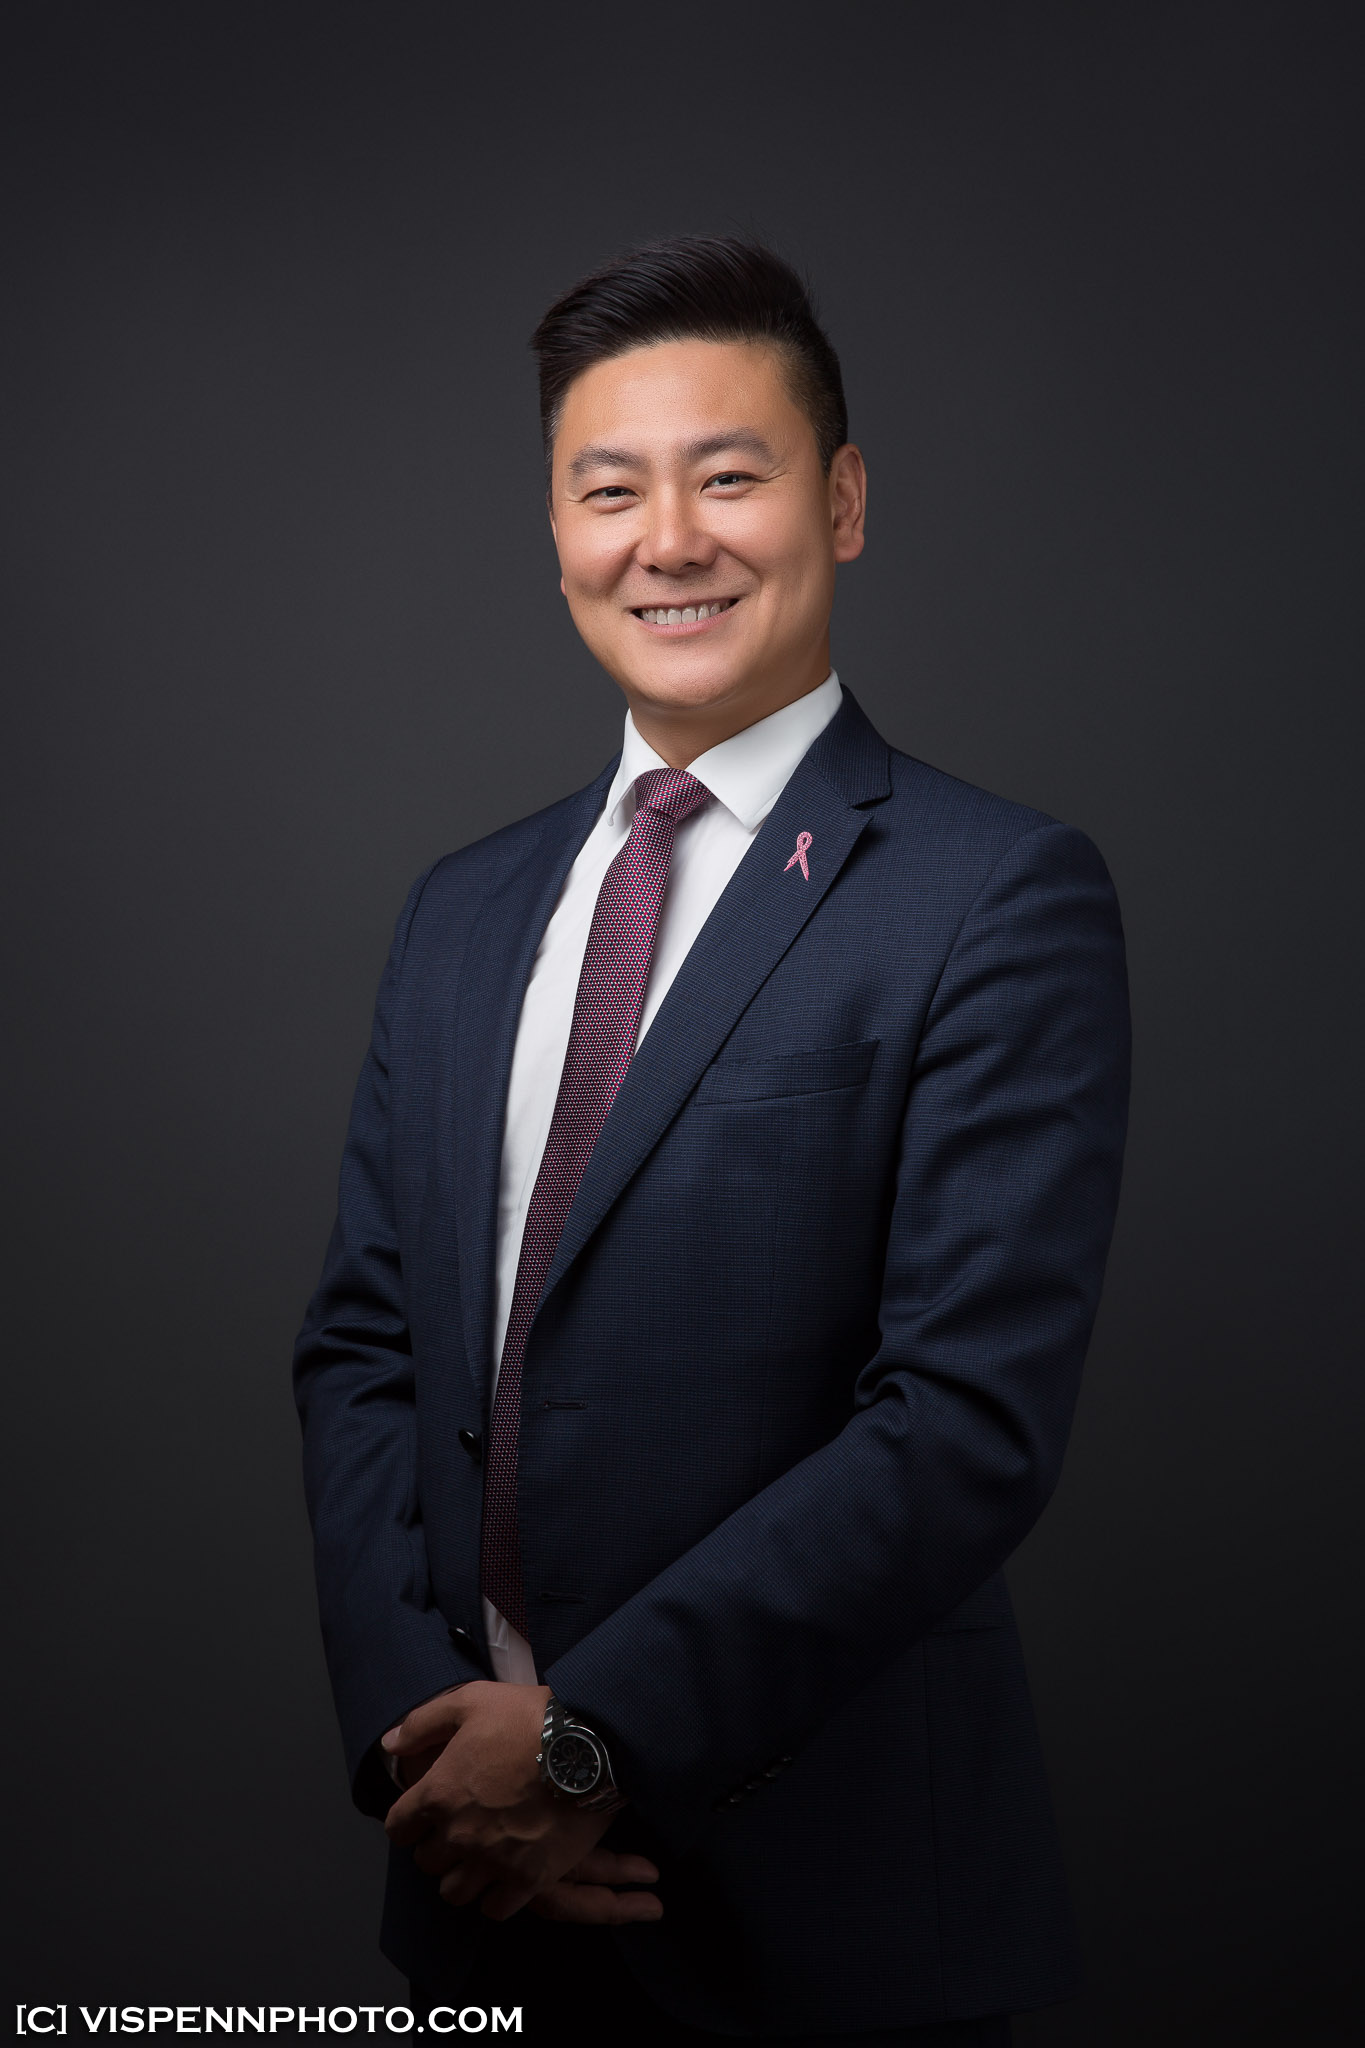 Headshot Melbourne Business Corporate Portraits VISPENN 墨尔本 商务 肖像工作照 团队 形象照 LinkedIn 头像 5DB 5116